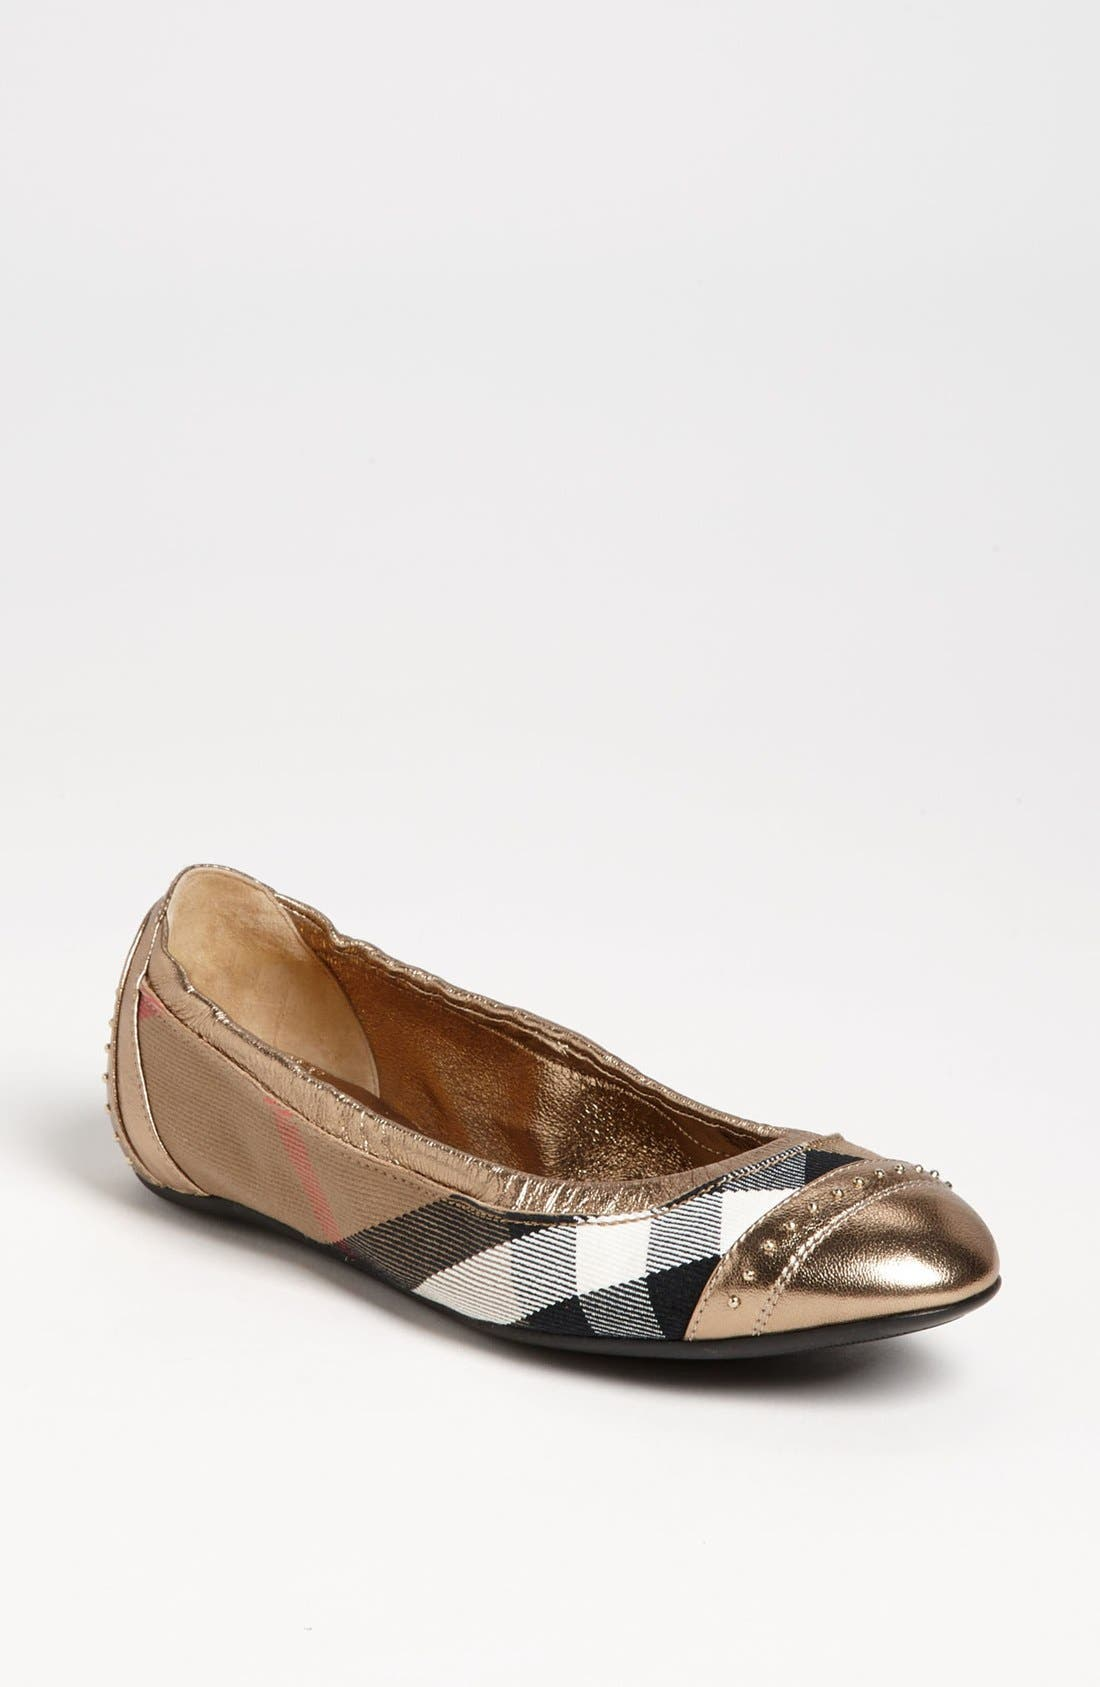 Alternate Image 1 Selected - Burberry 'Southwark' Flat